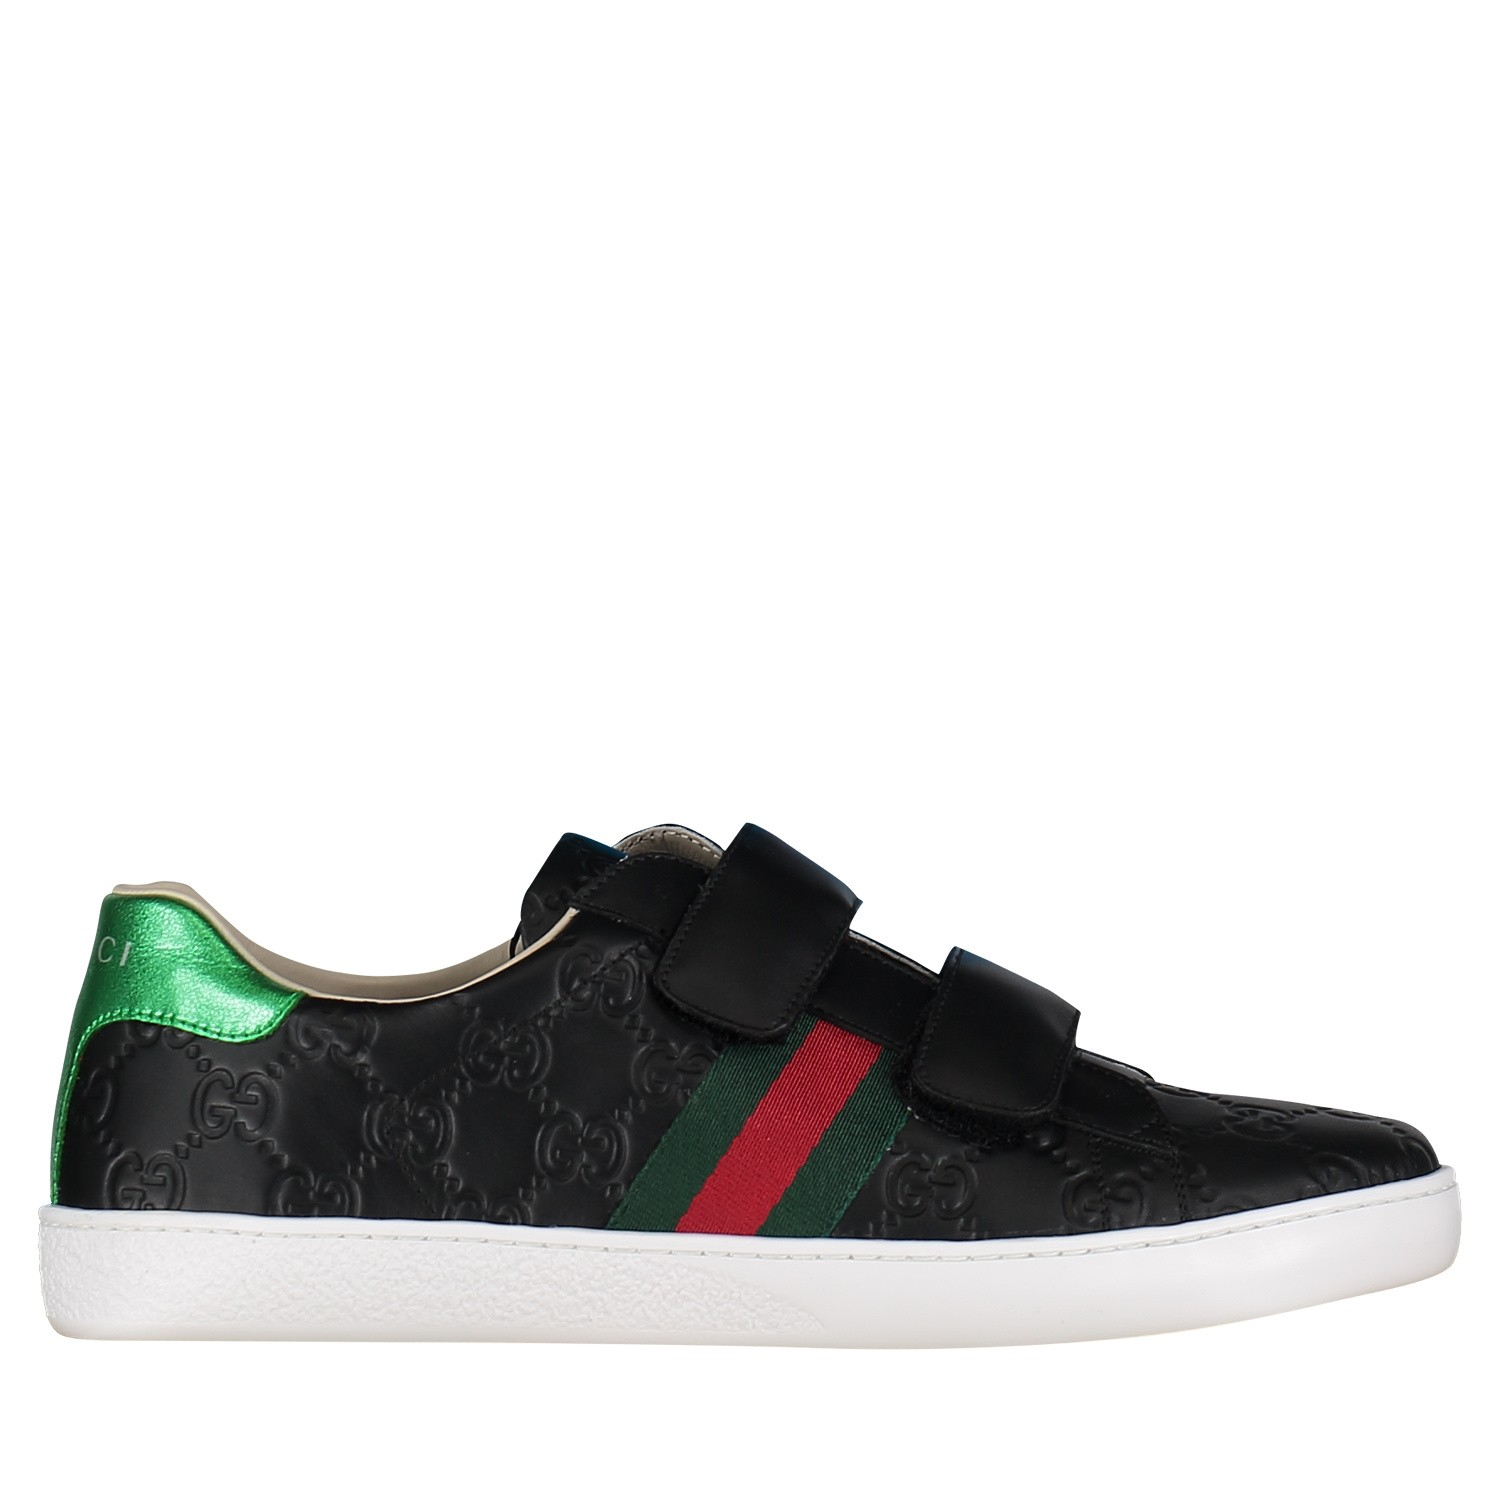 Picture of Gucci 455496 DF720 kids sneakers black